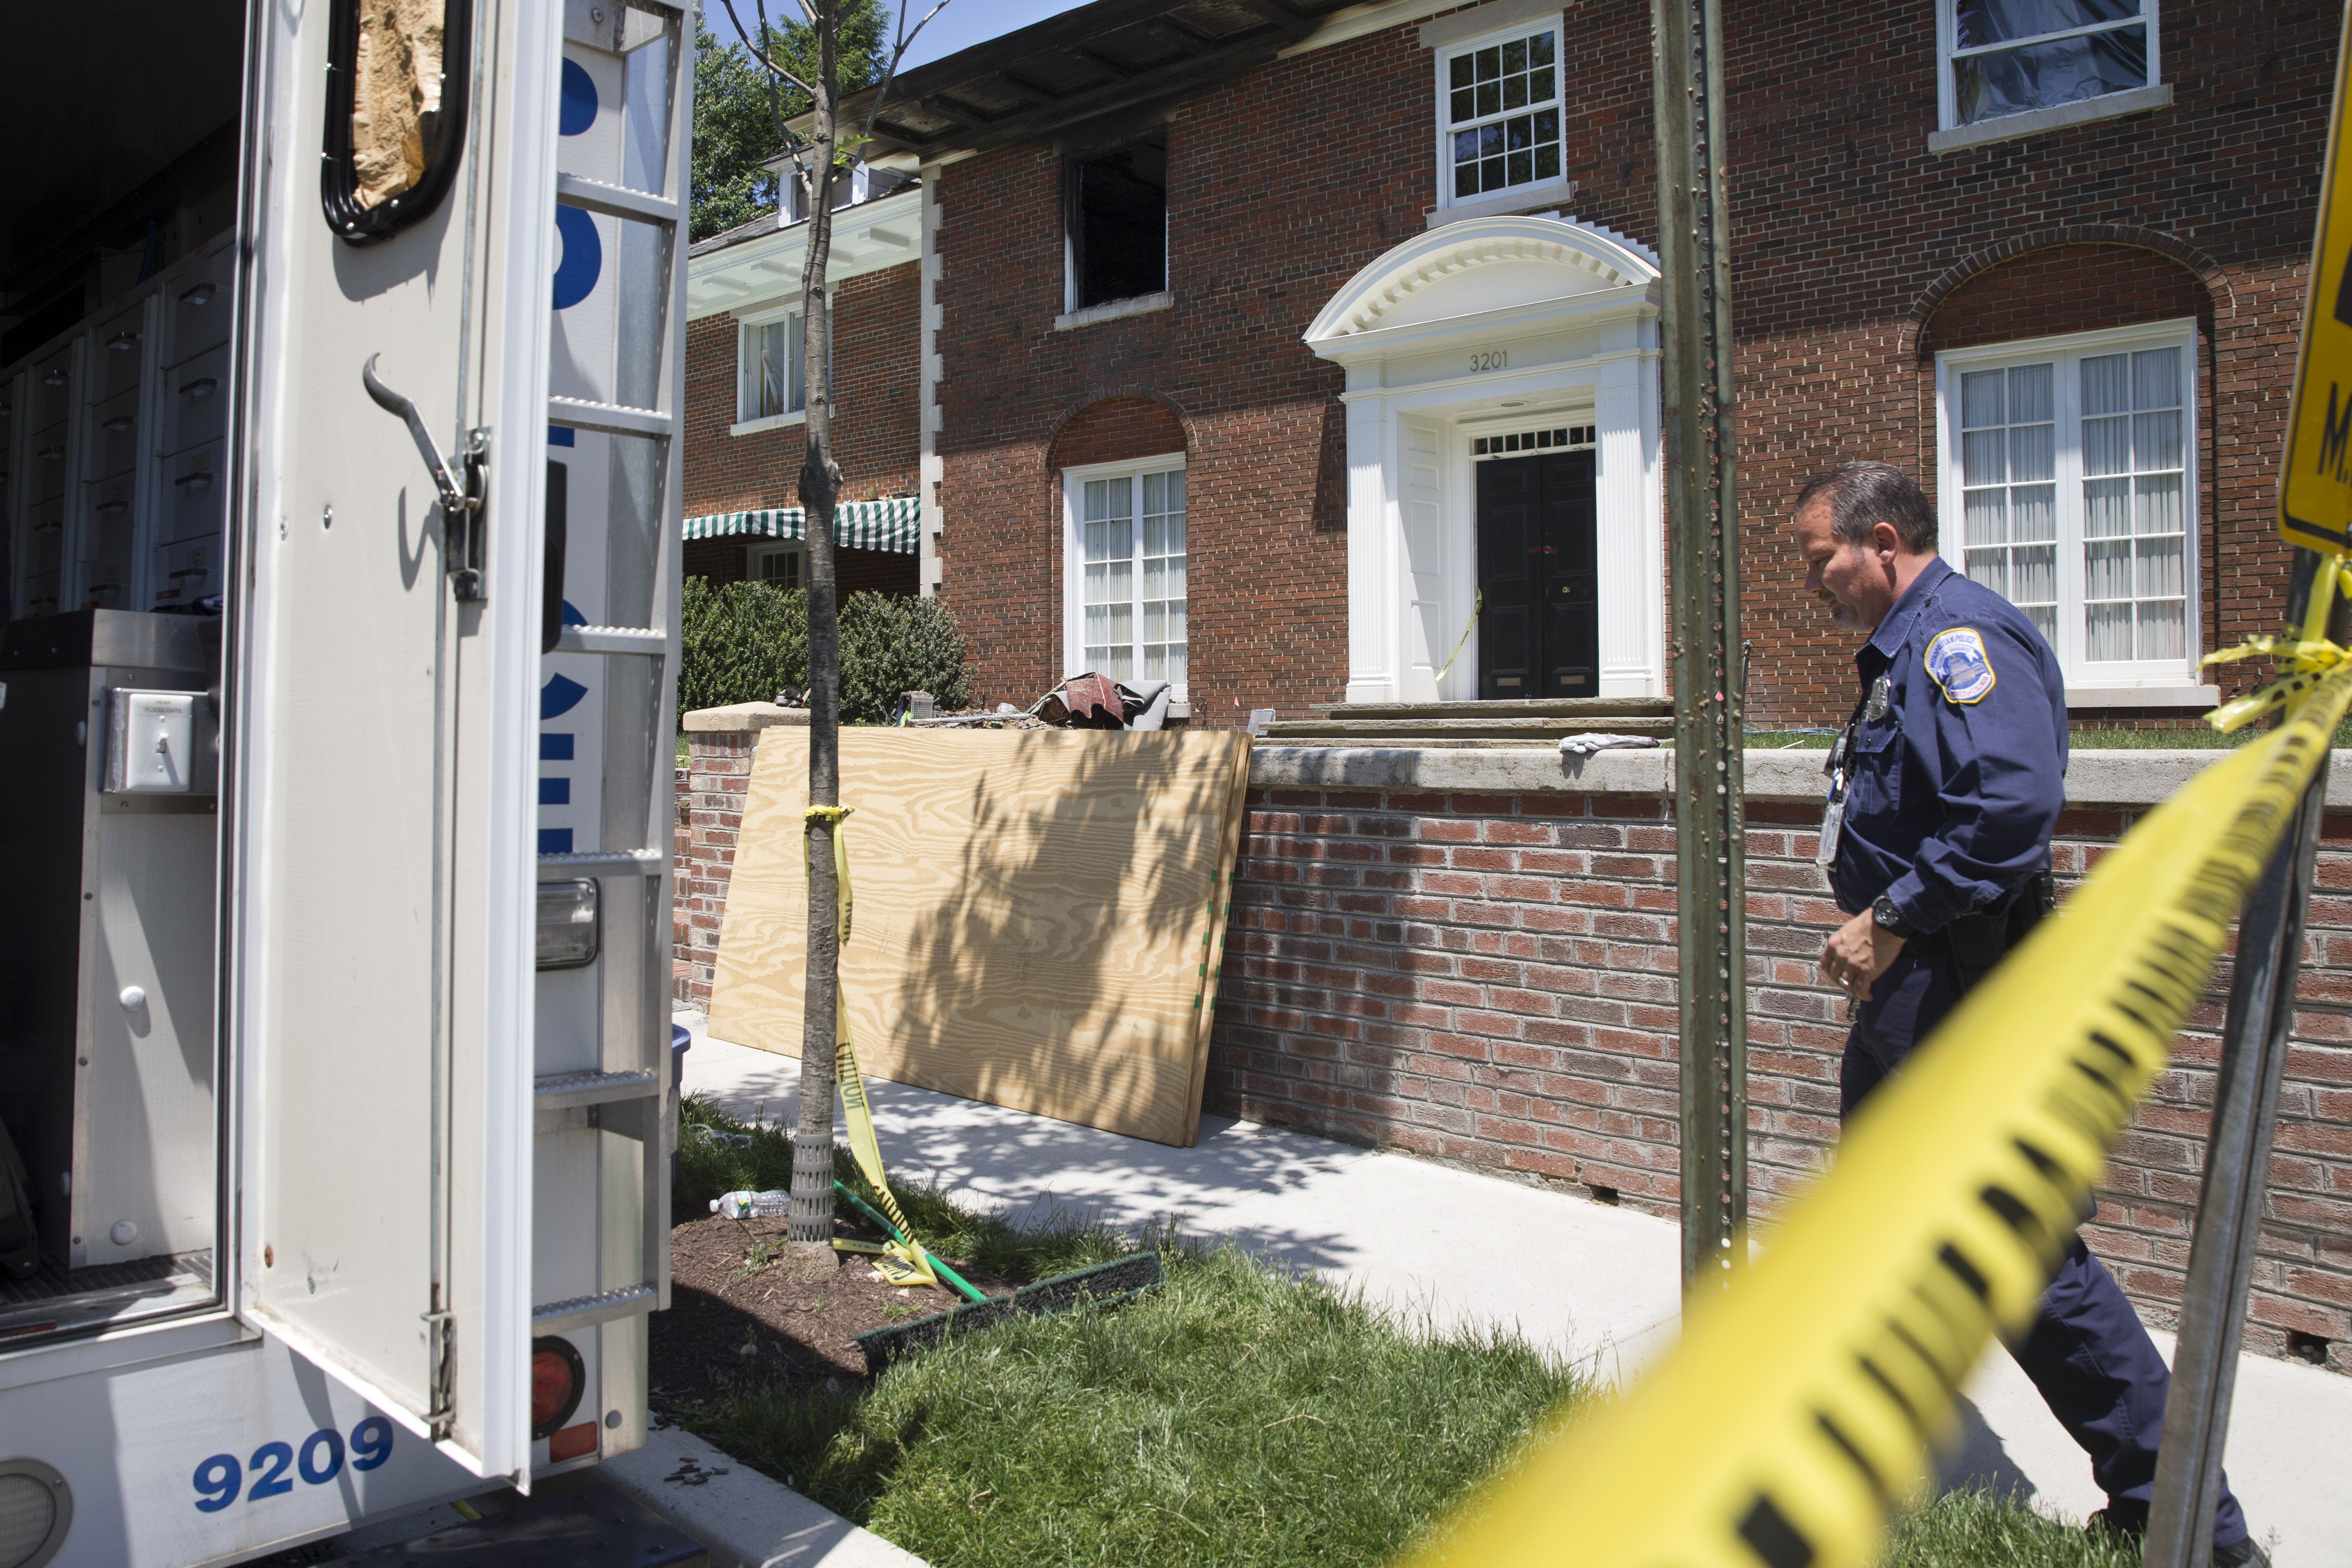 Hours before bodies were discovered inside burning mansion, neighbors saw man slip inside